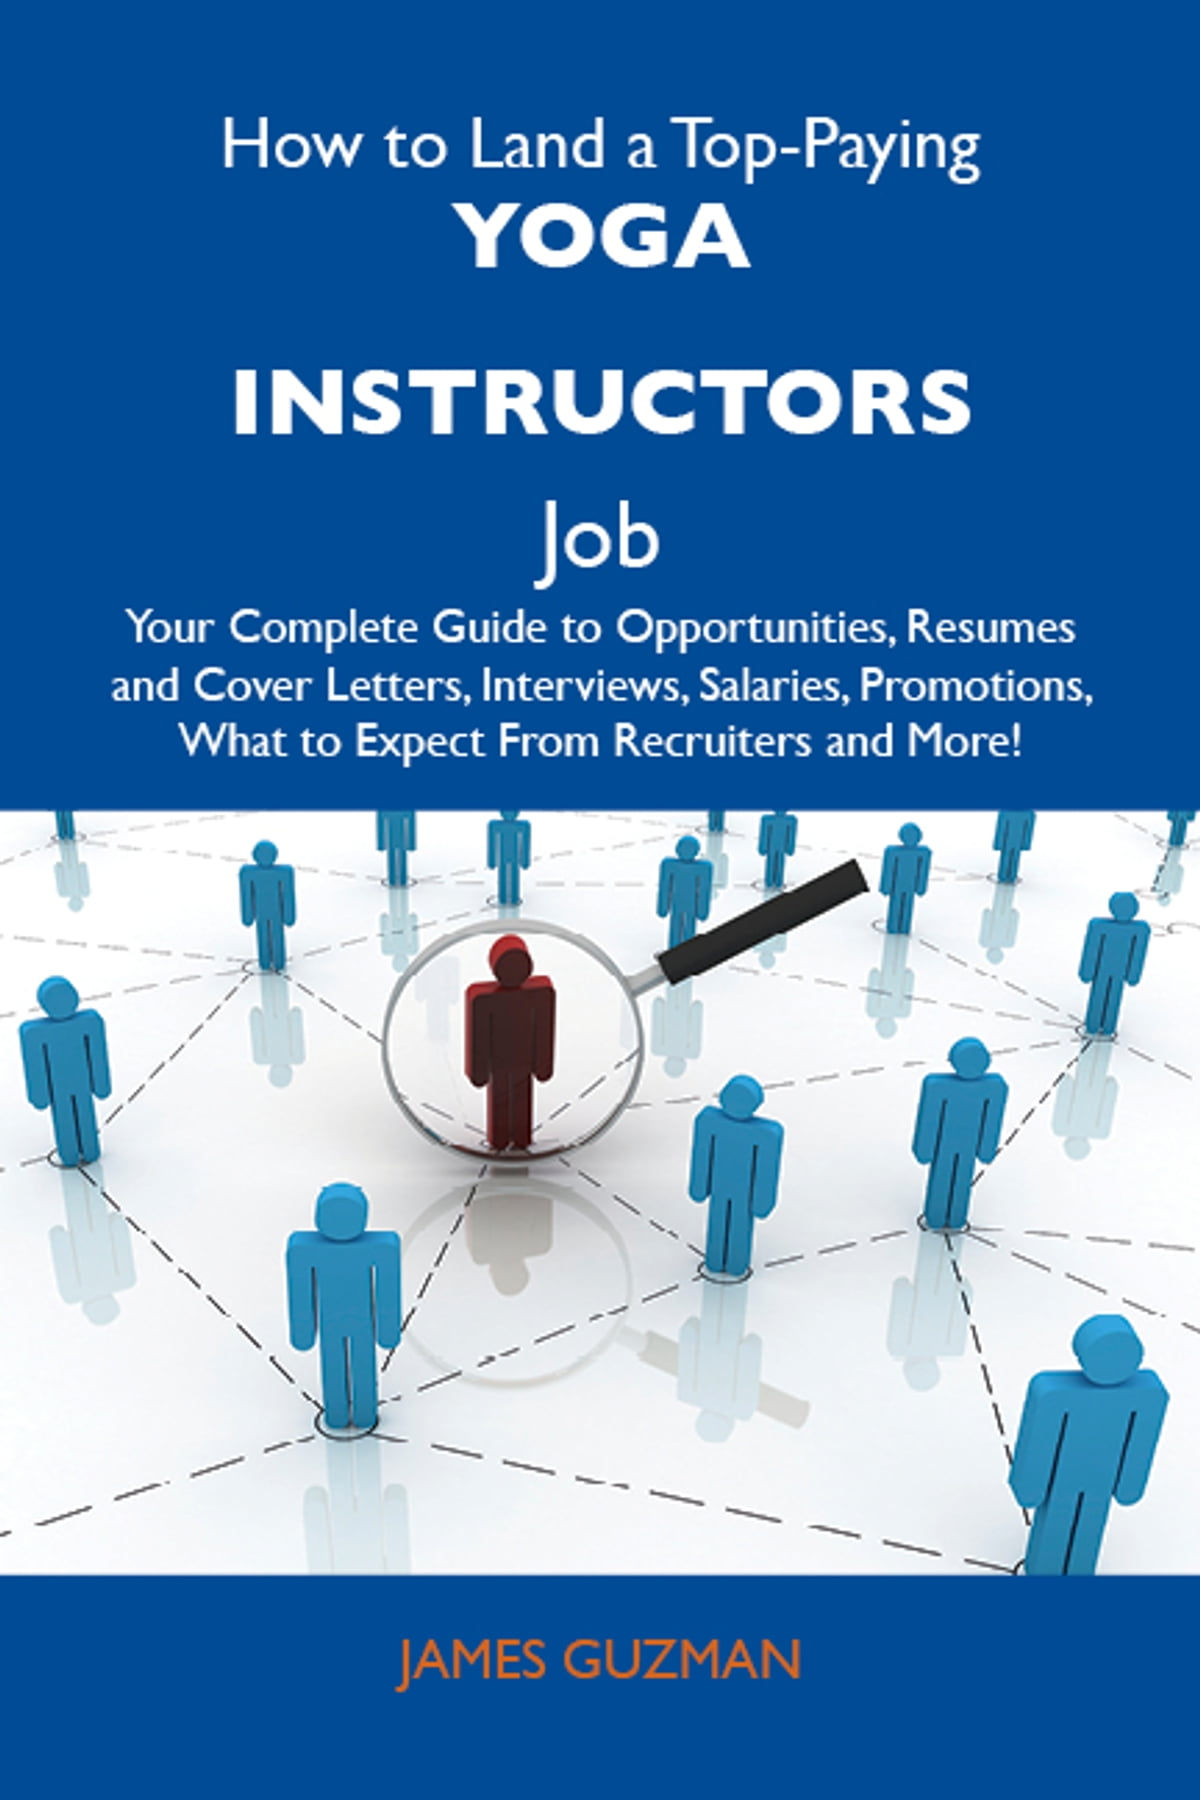 How To Land A Top Paying Yoga Instructors Job Your Complete Guide To Opportunities Resumes And Cover Letters Interviews Salaries Promotions What To Expect From Recruiters And More Ebook By Guzman James